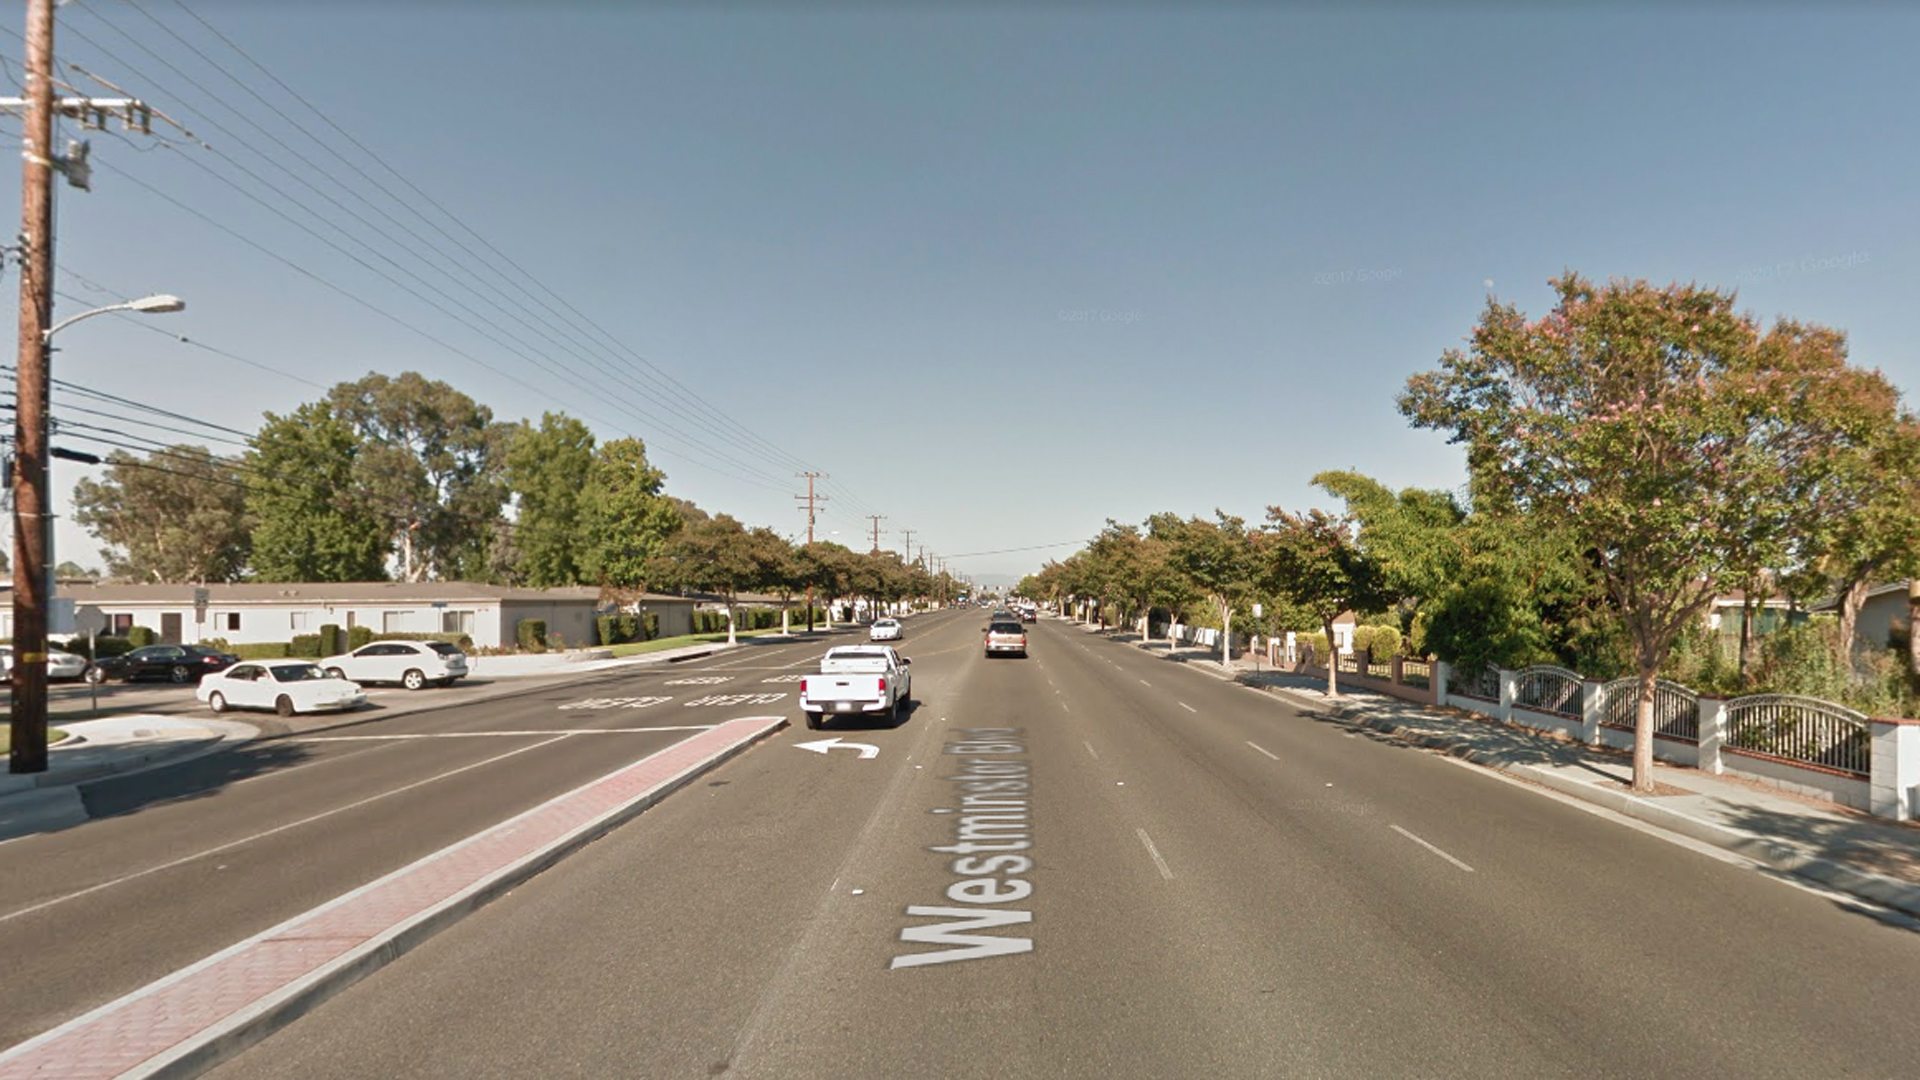 The 9600 block of Westminster Boulevard in Garden Grove, as viewed in a Google Street View.